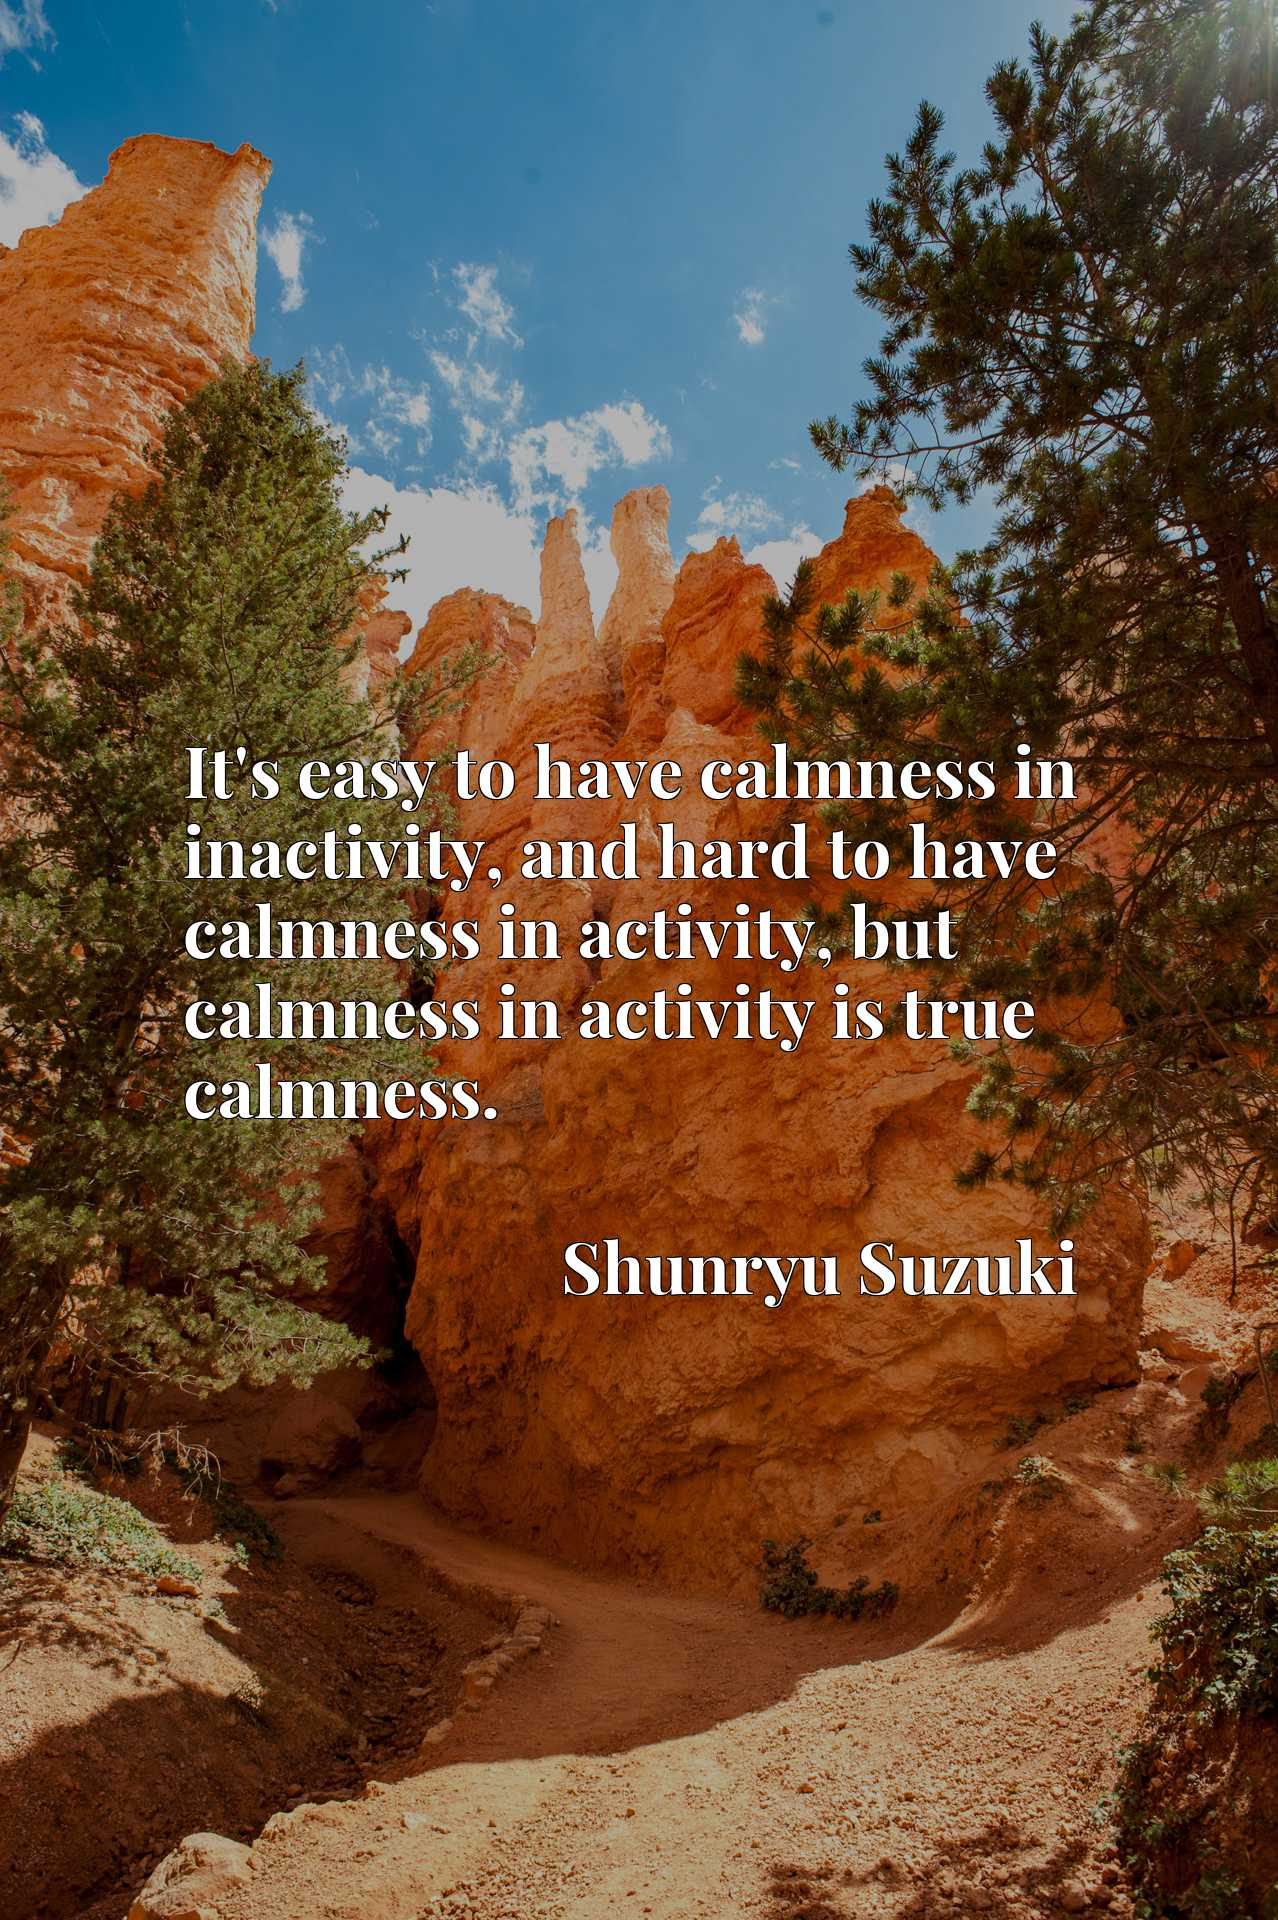 It's easy to have calmness in inactivity, and hard to have calmness in activity, but calmness in activity is true calmness.